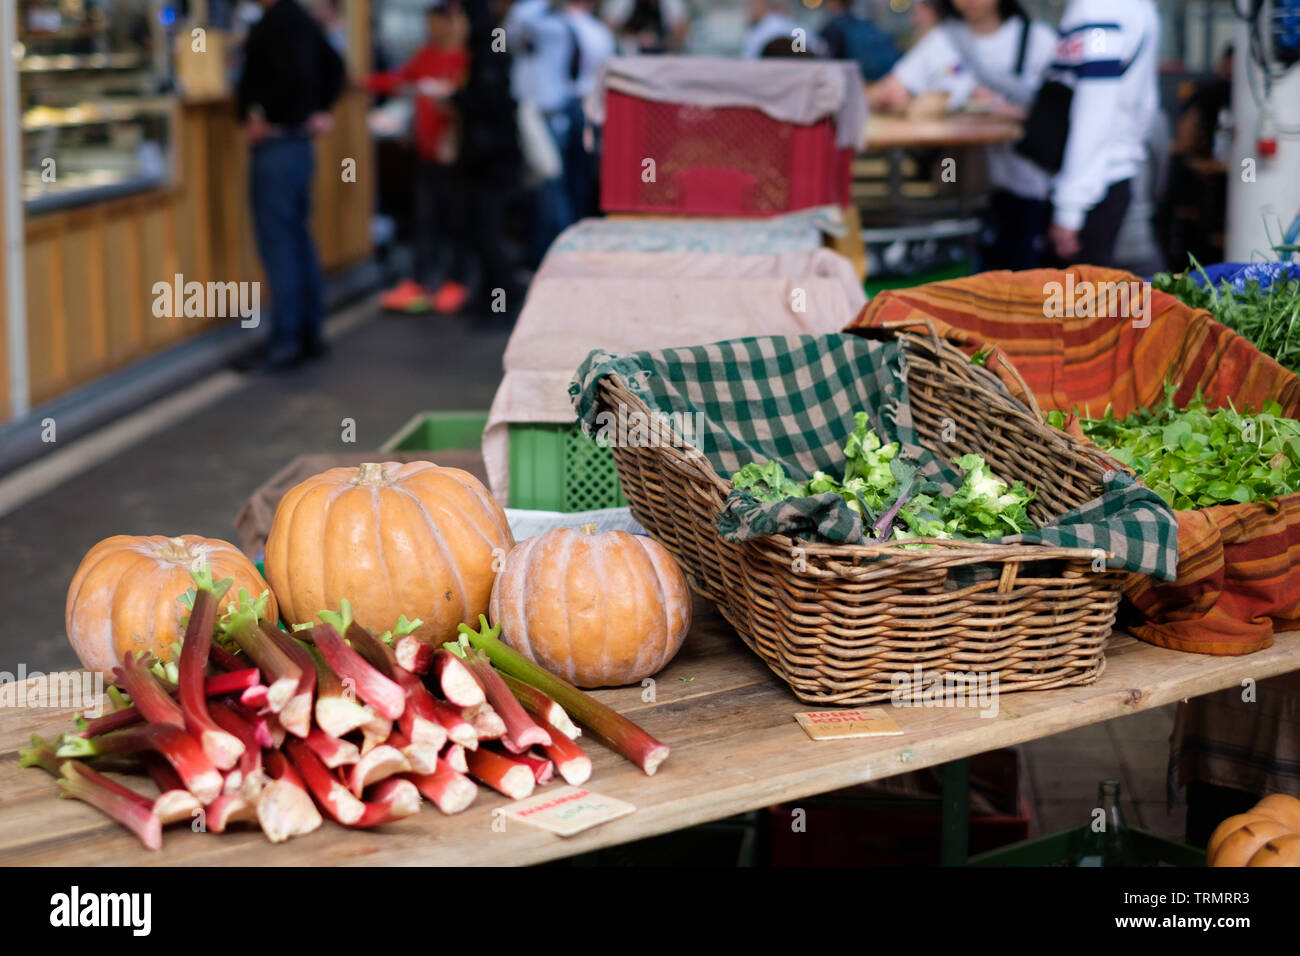 Markthalle Neun (Market hall nine) - indoor market dating from 1891, located in the Kreuzberg area of Berlin, Germany - Stock Image